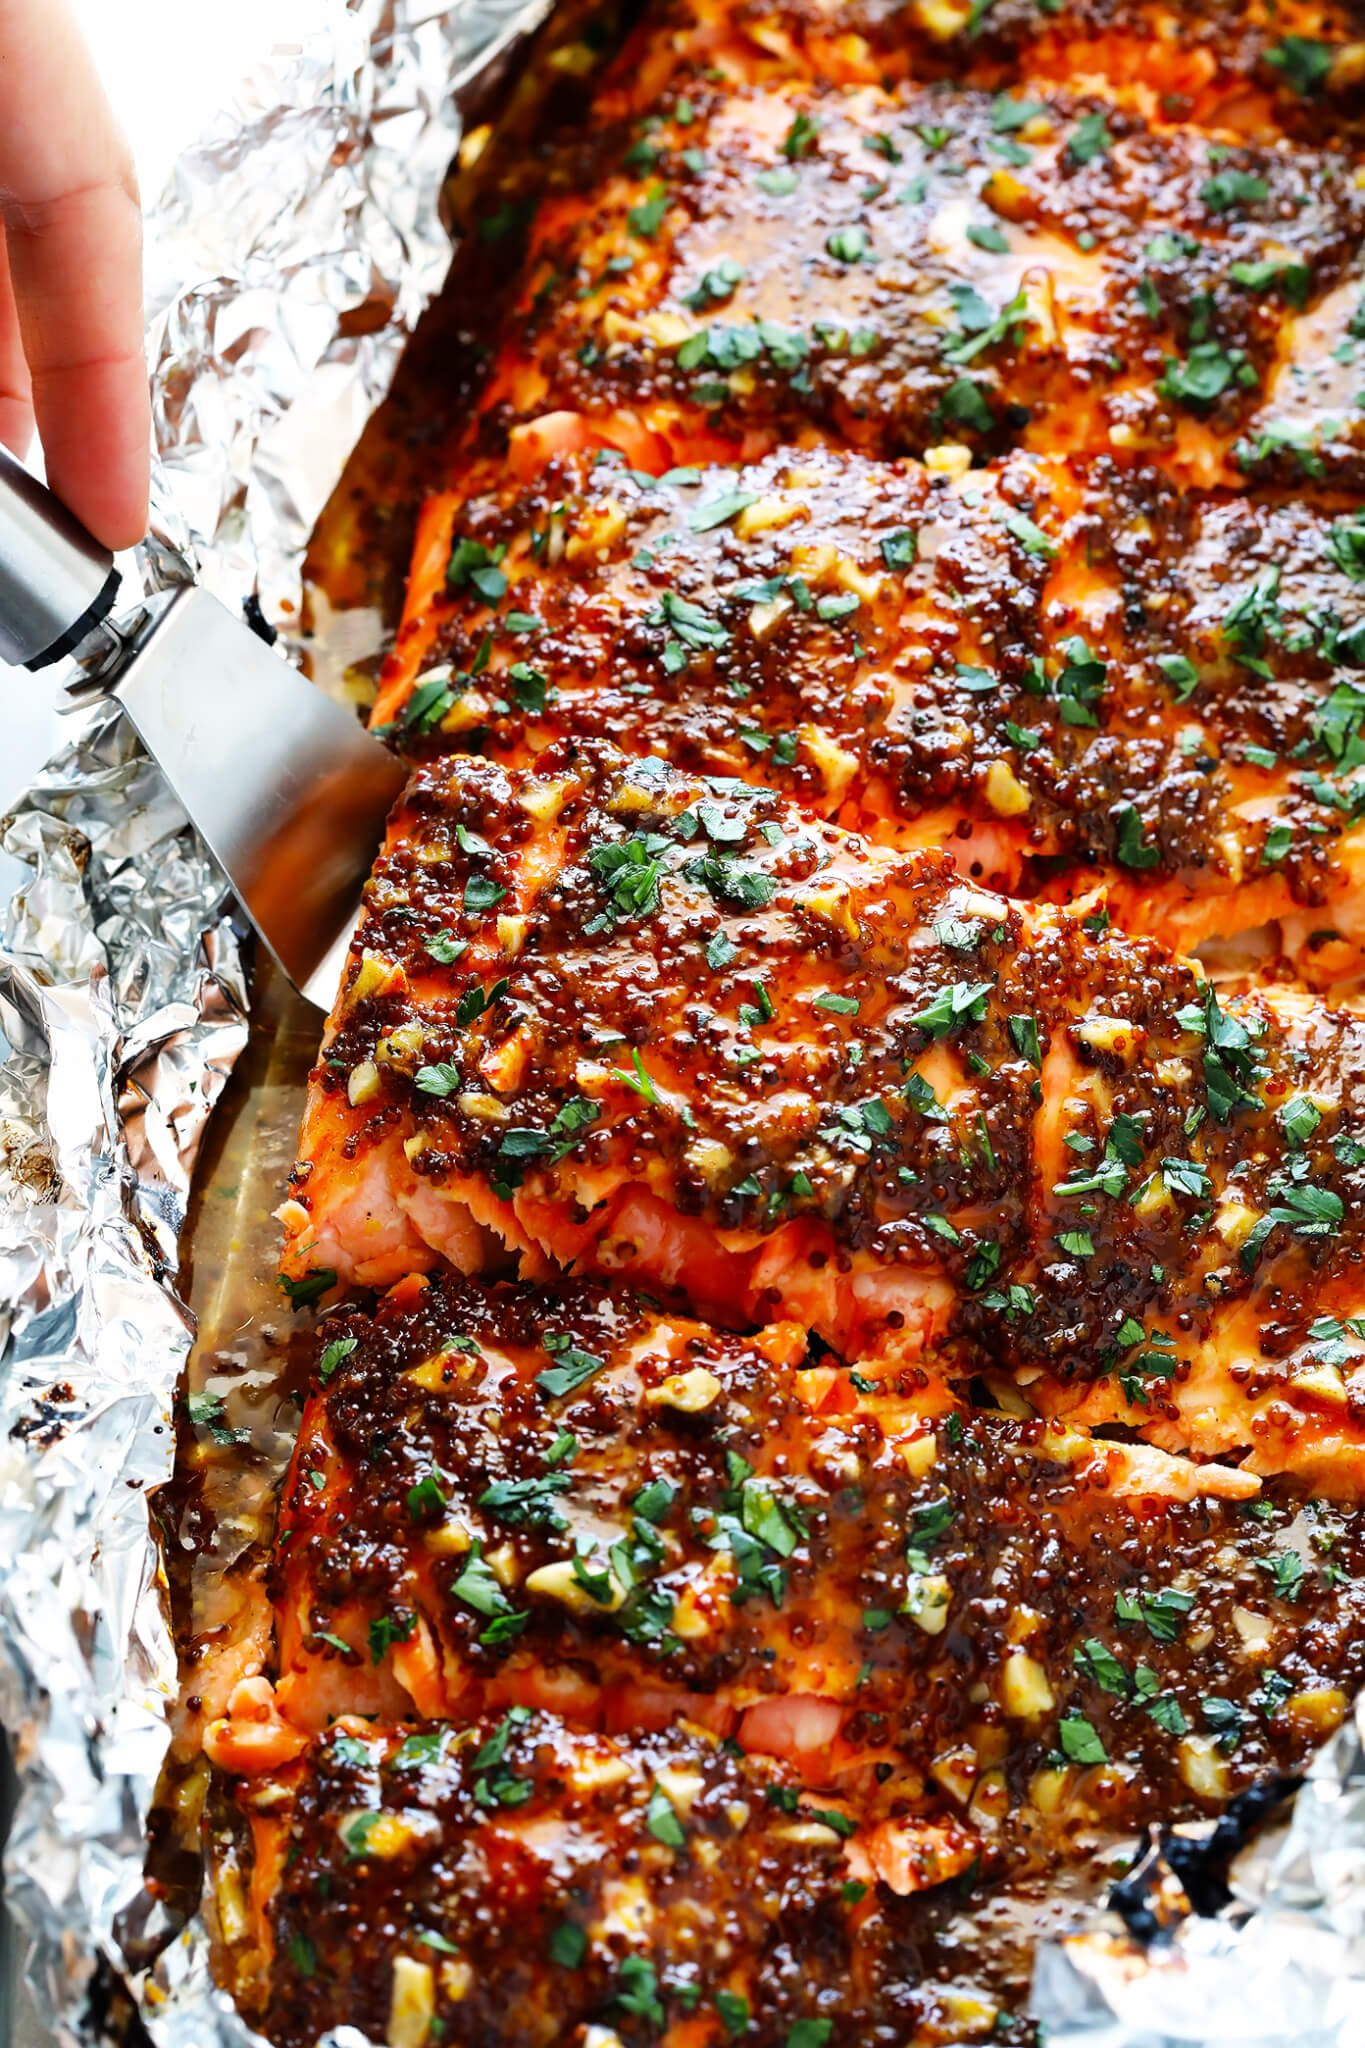 This 25-Minute Honey-Mustard Salmon In Foil recipe is the BEST. It's easy to make baked or grilled, it's full of great flavor, and it's always a crowd pleaser! | gimmesomeoven.com (Gluten-Free / Pescetarian)